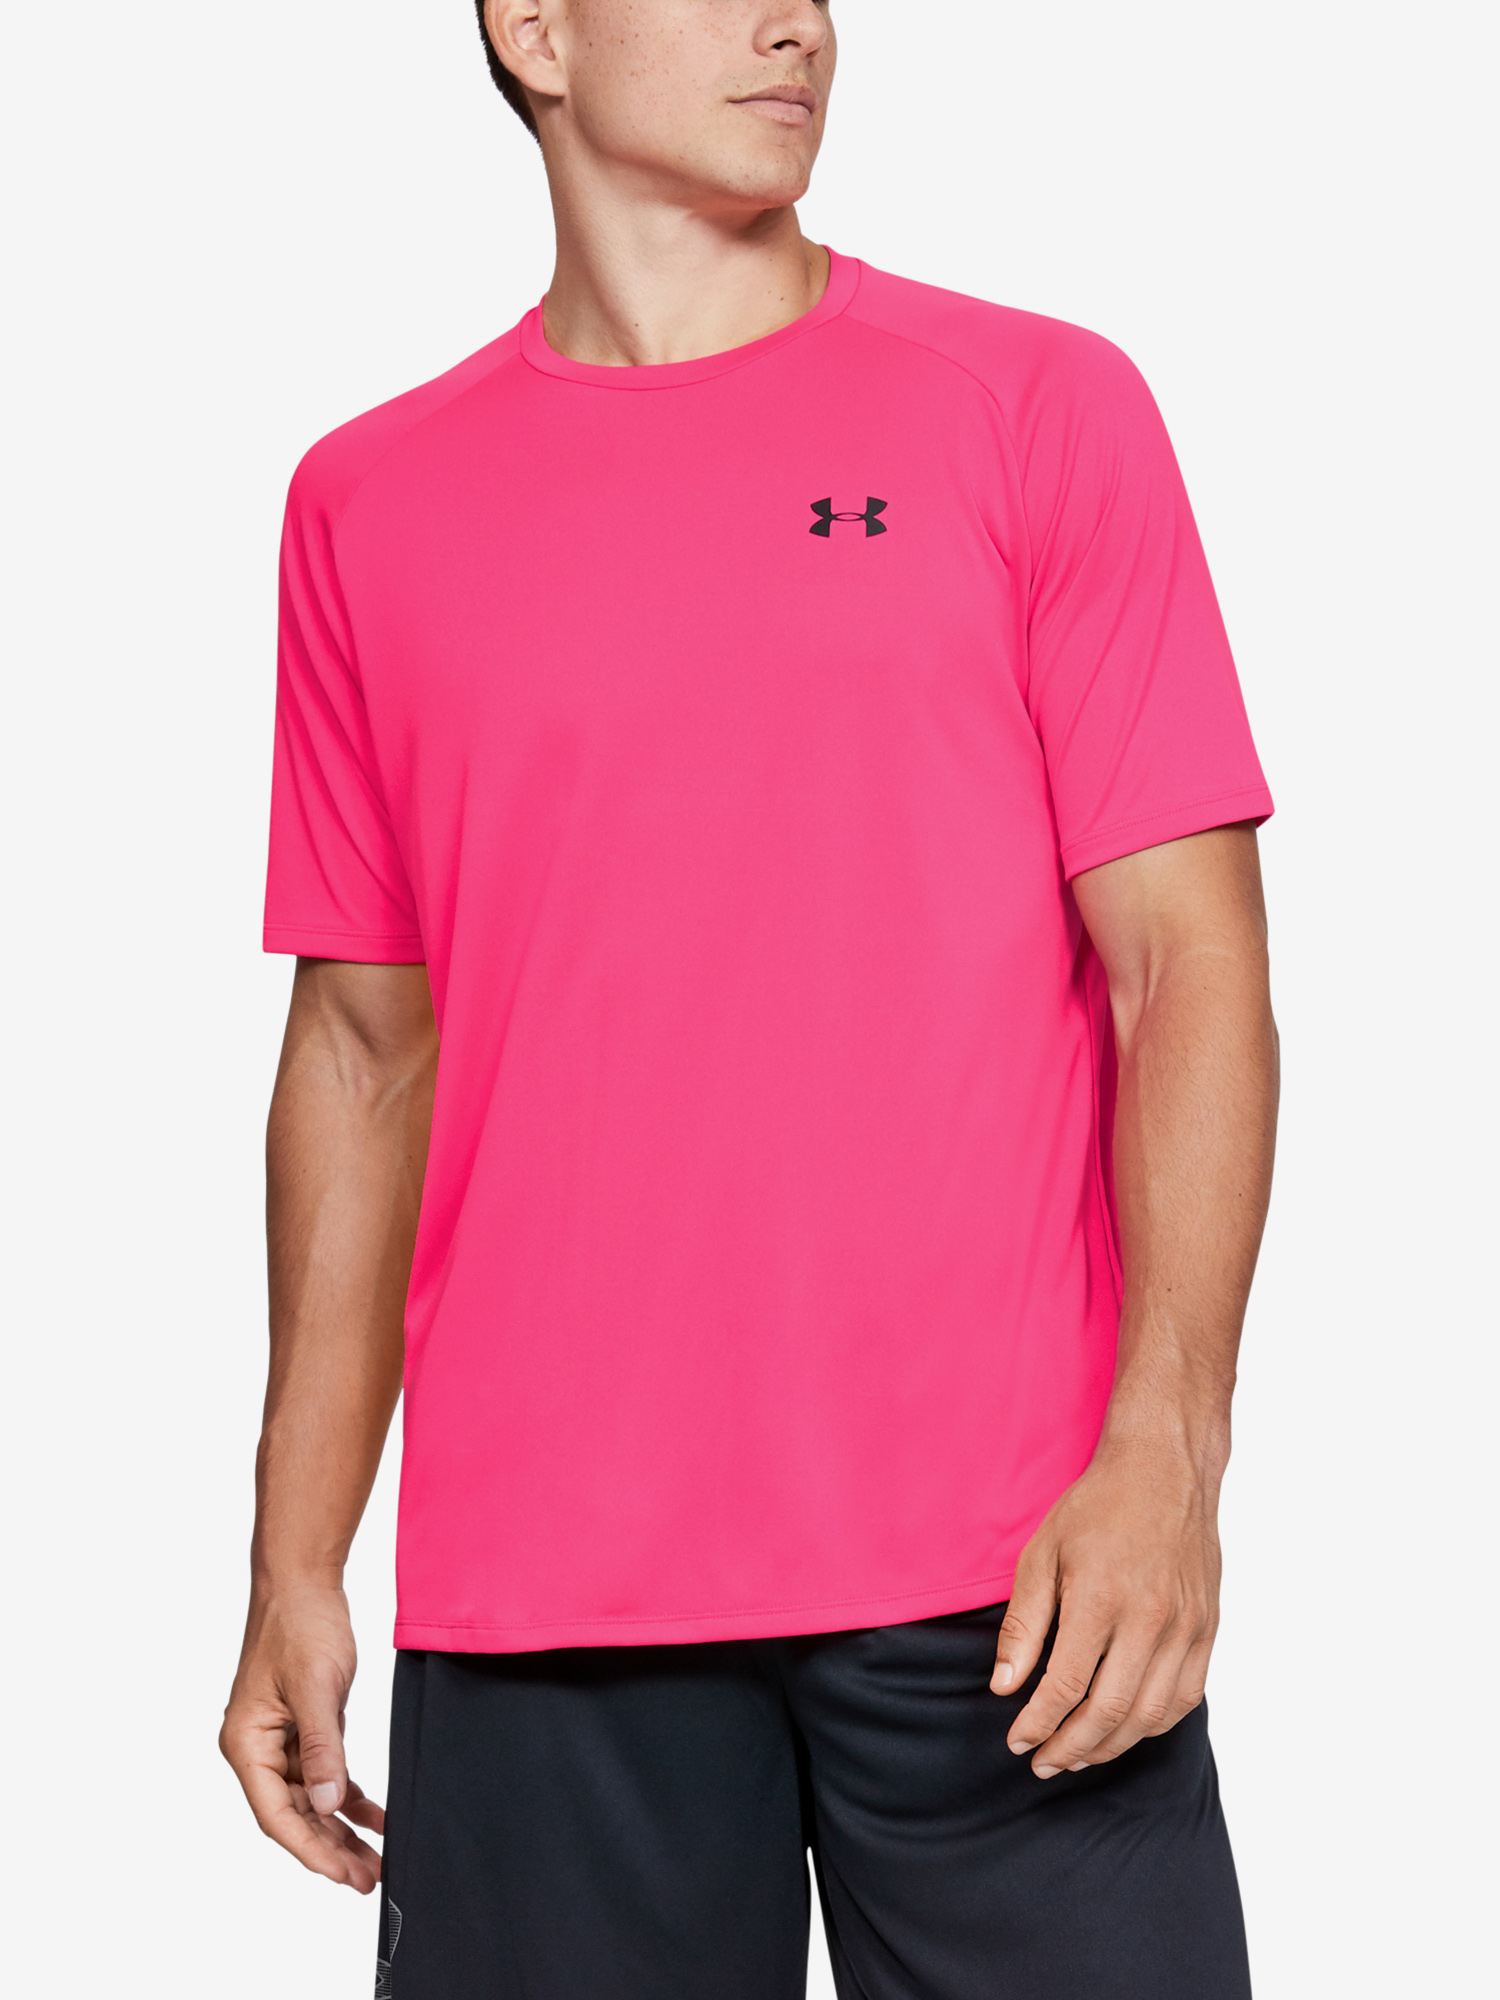 Tričko Under Armour Tech 2.0 SS Tee-PNK (1)